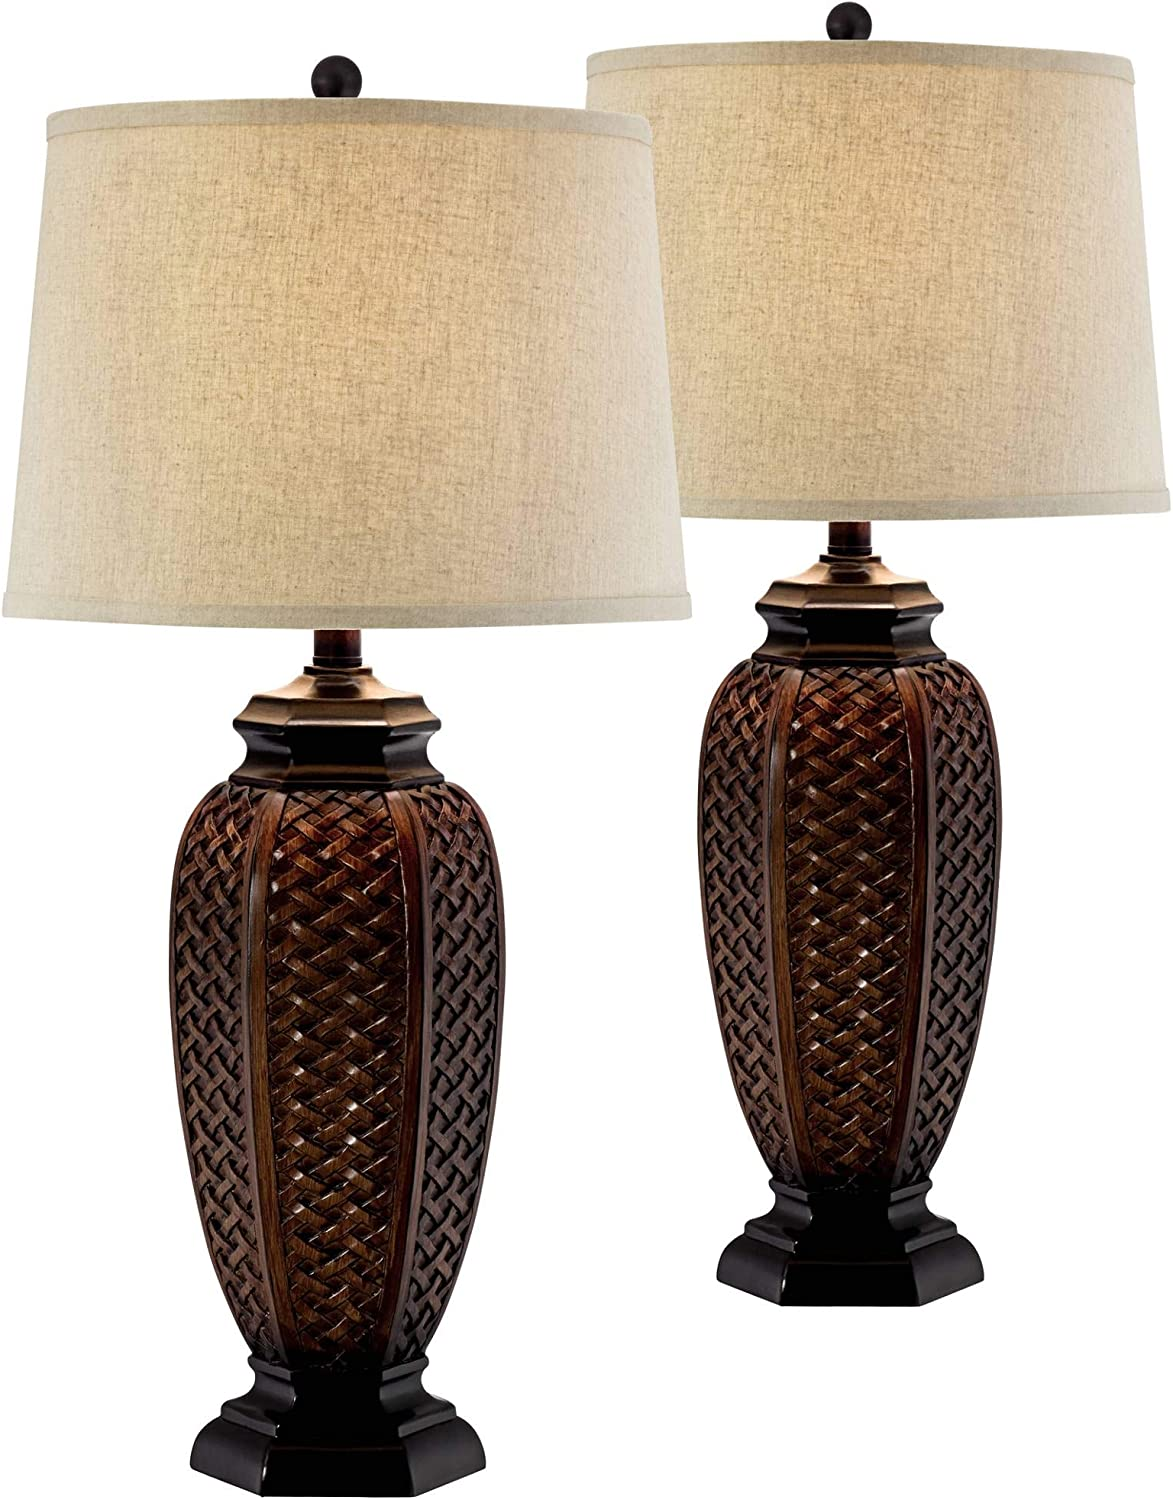 Tropical Table Lamps Set of 2 Weathered Brown Woven Wicker Jar Beige Linen Drum Shade for Living Room Family Bedroom - Regency Hill